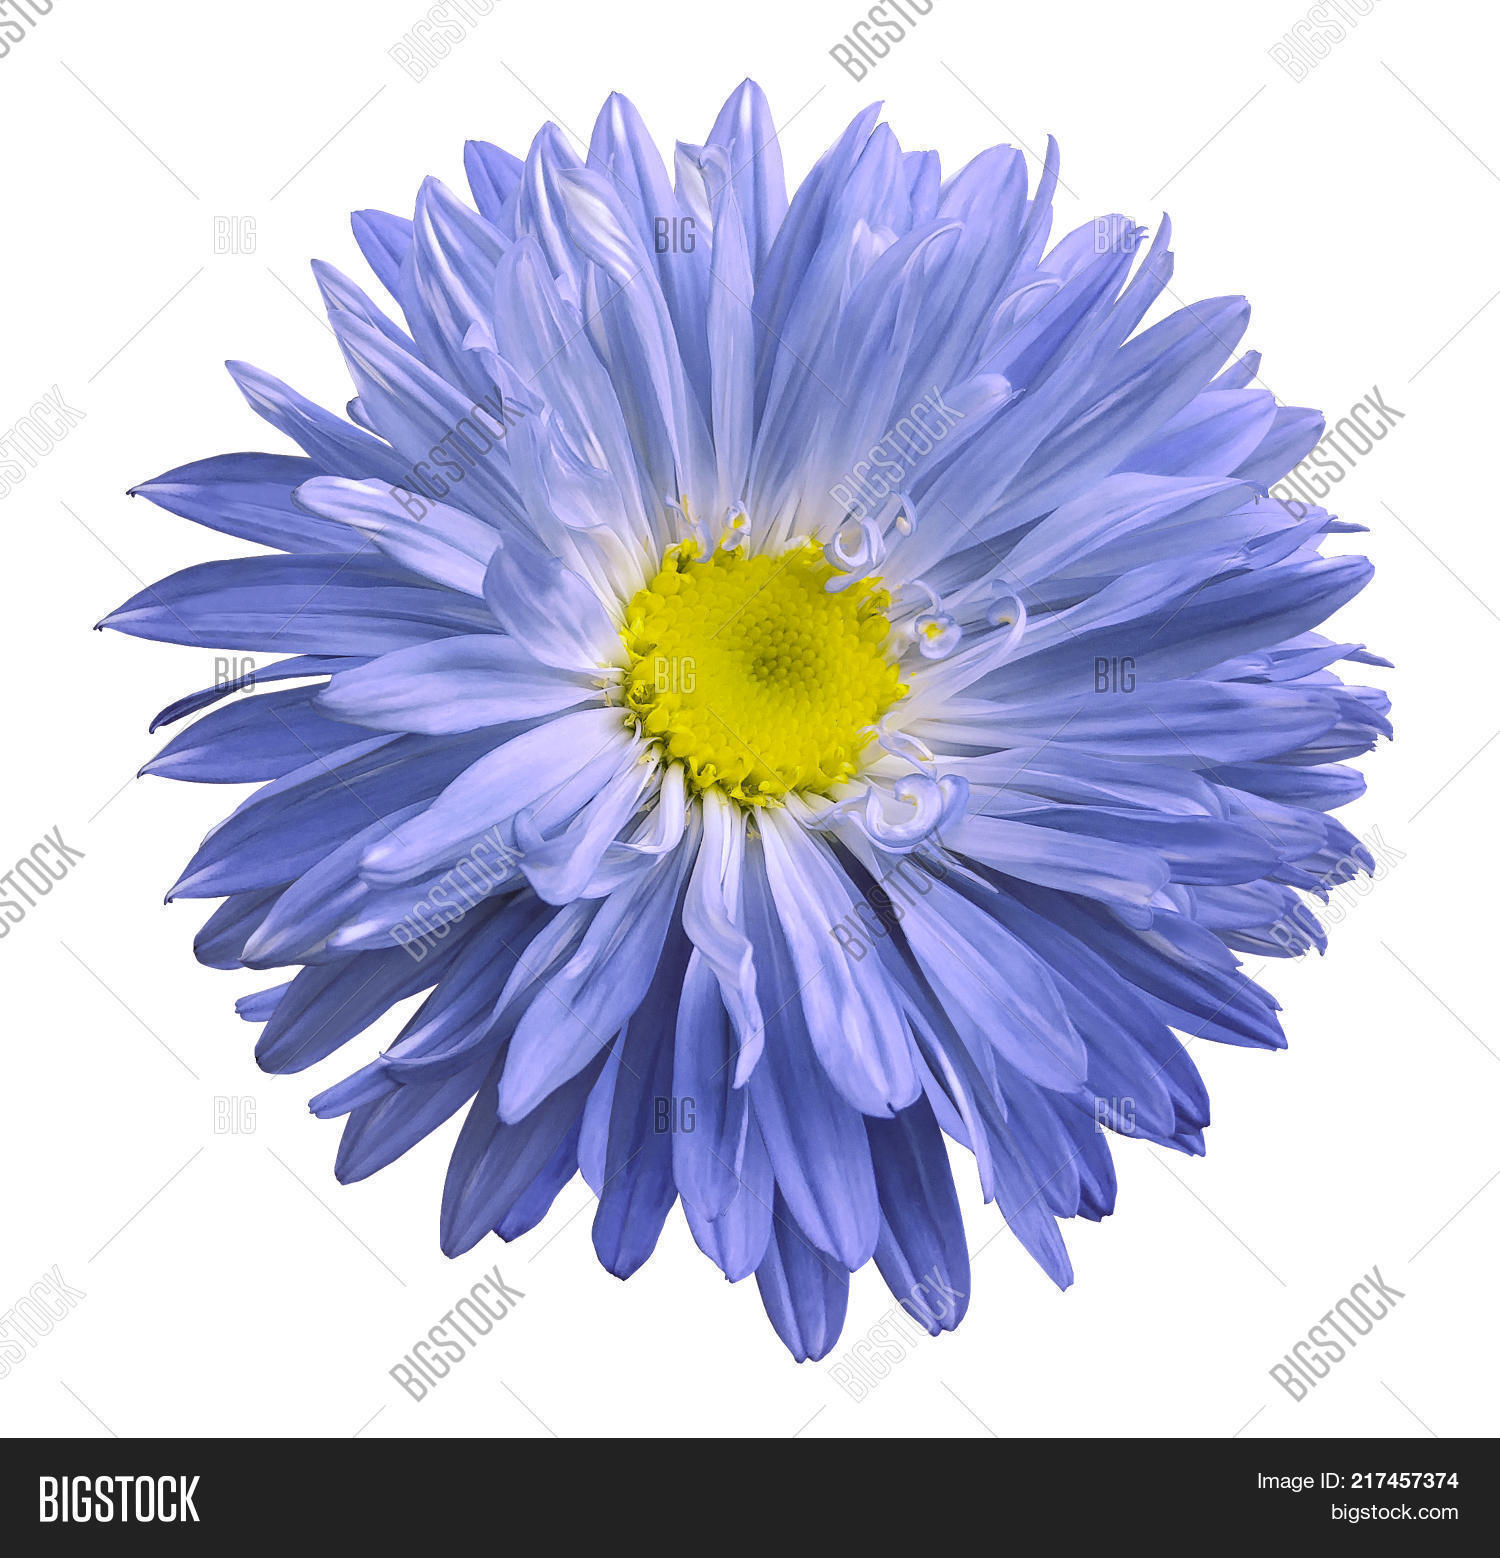 Blue Aster Flower On Image Photo Free Trial Bigstock